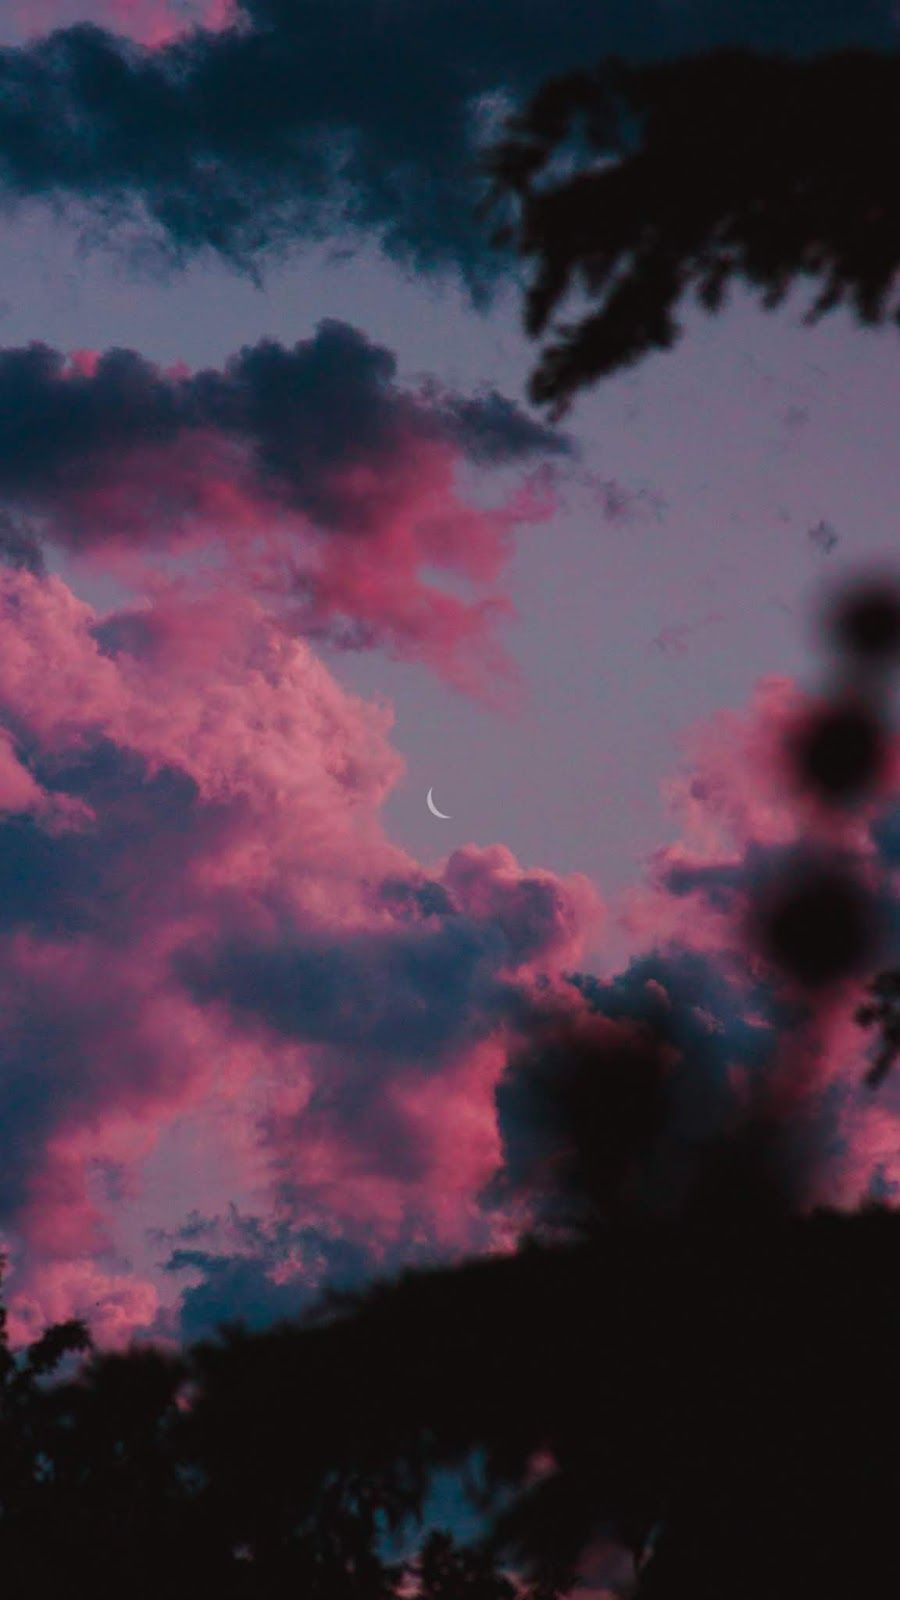 Crescent Moon In The Pink Sky Pretty Wallpapers Night Sky Wallpaper Sky Aesthetic